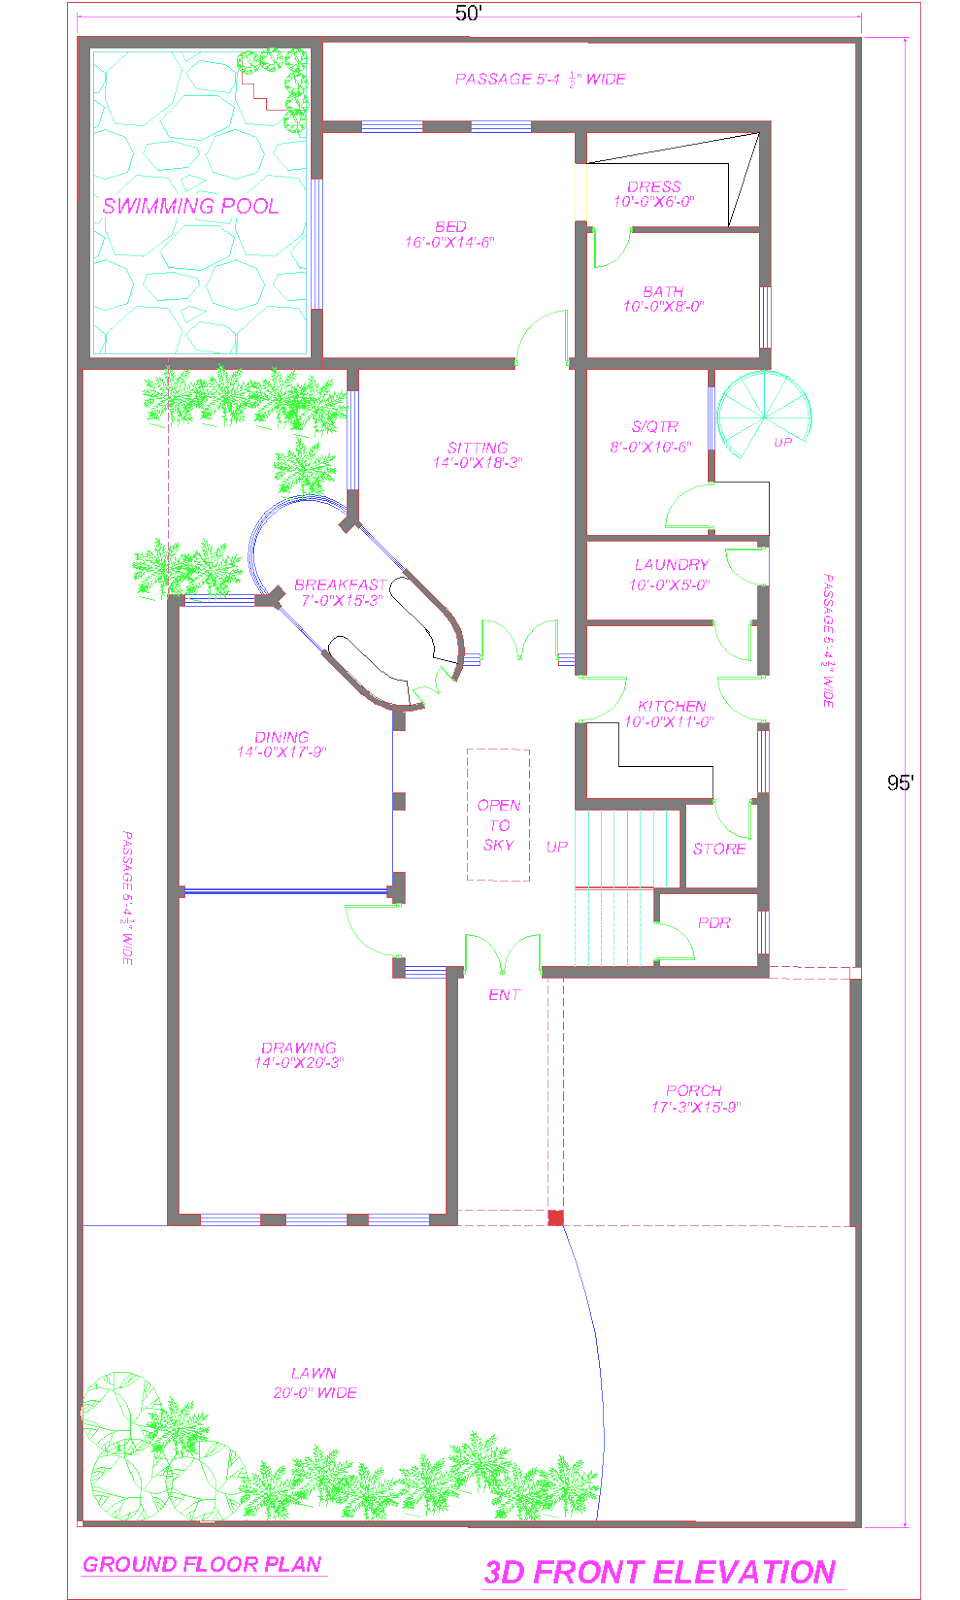 Pakistani house layout plan